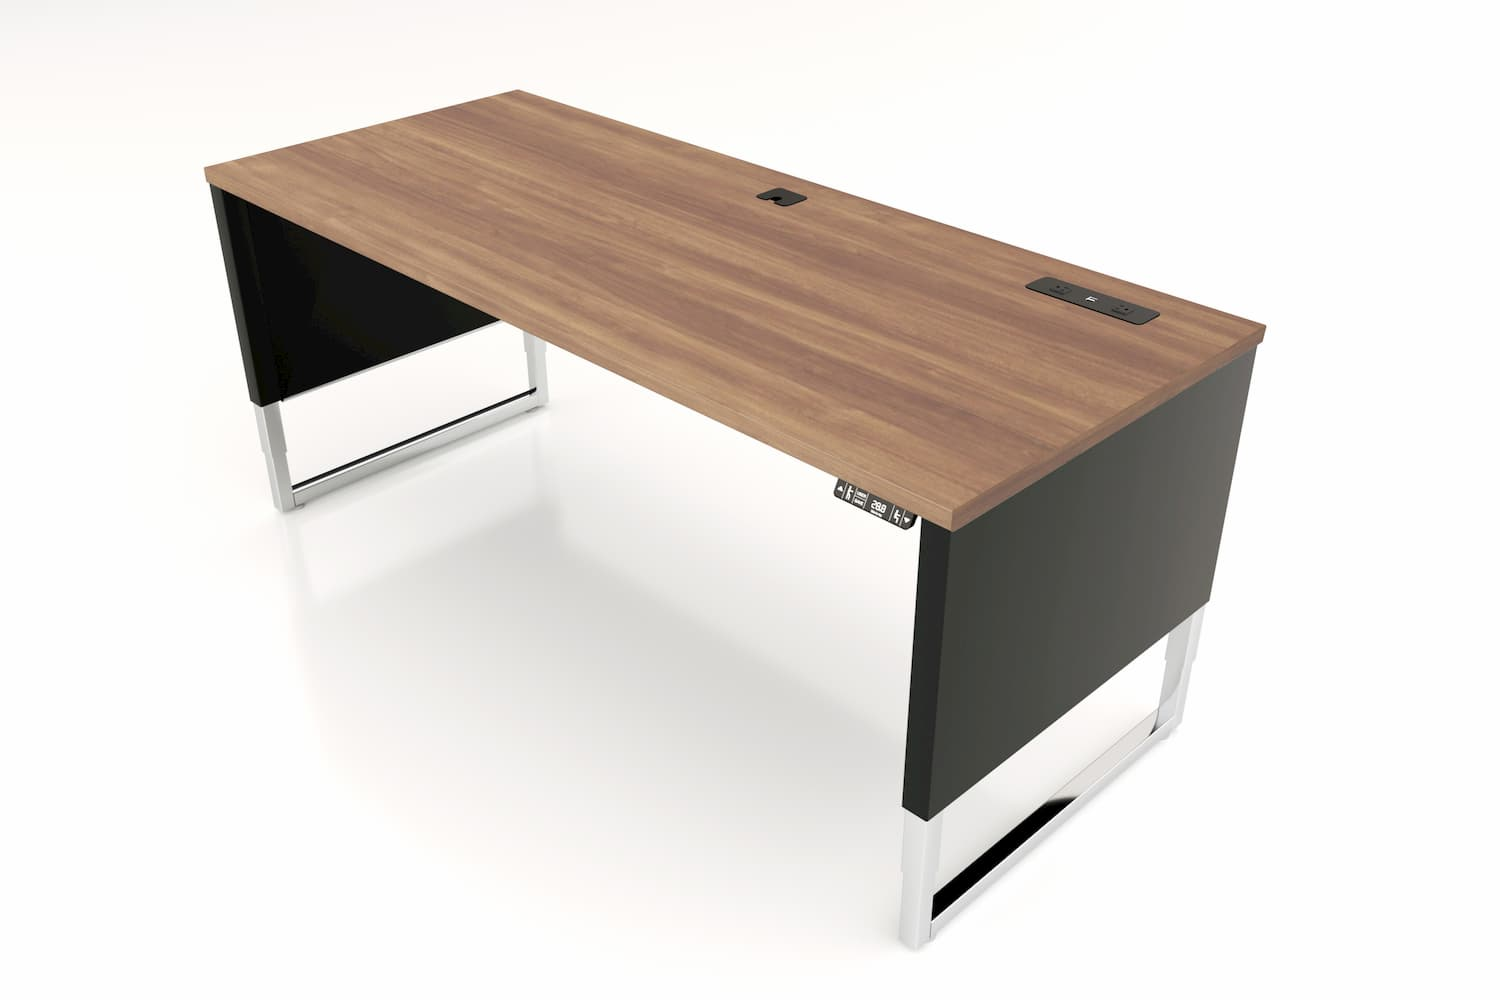 Advent-Desk-ADV-7230-BK-Custom-Top-2